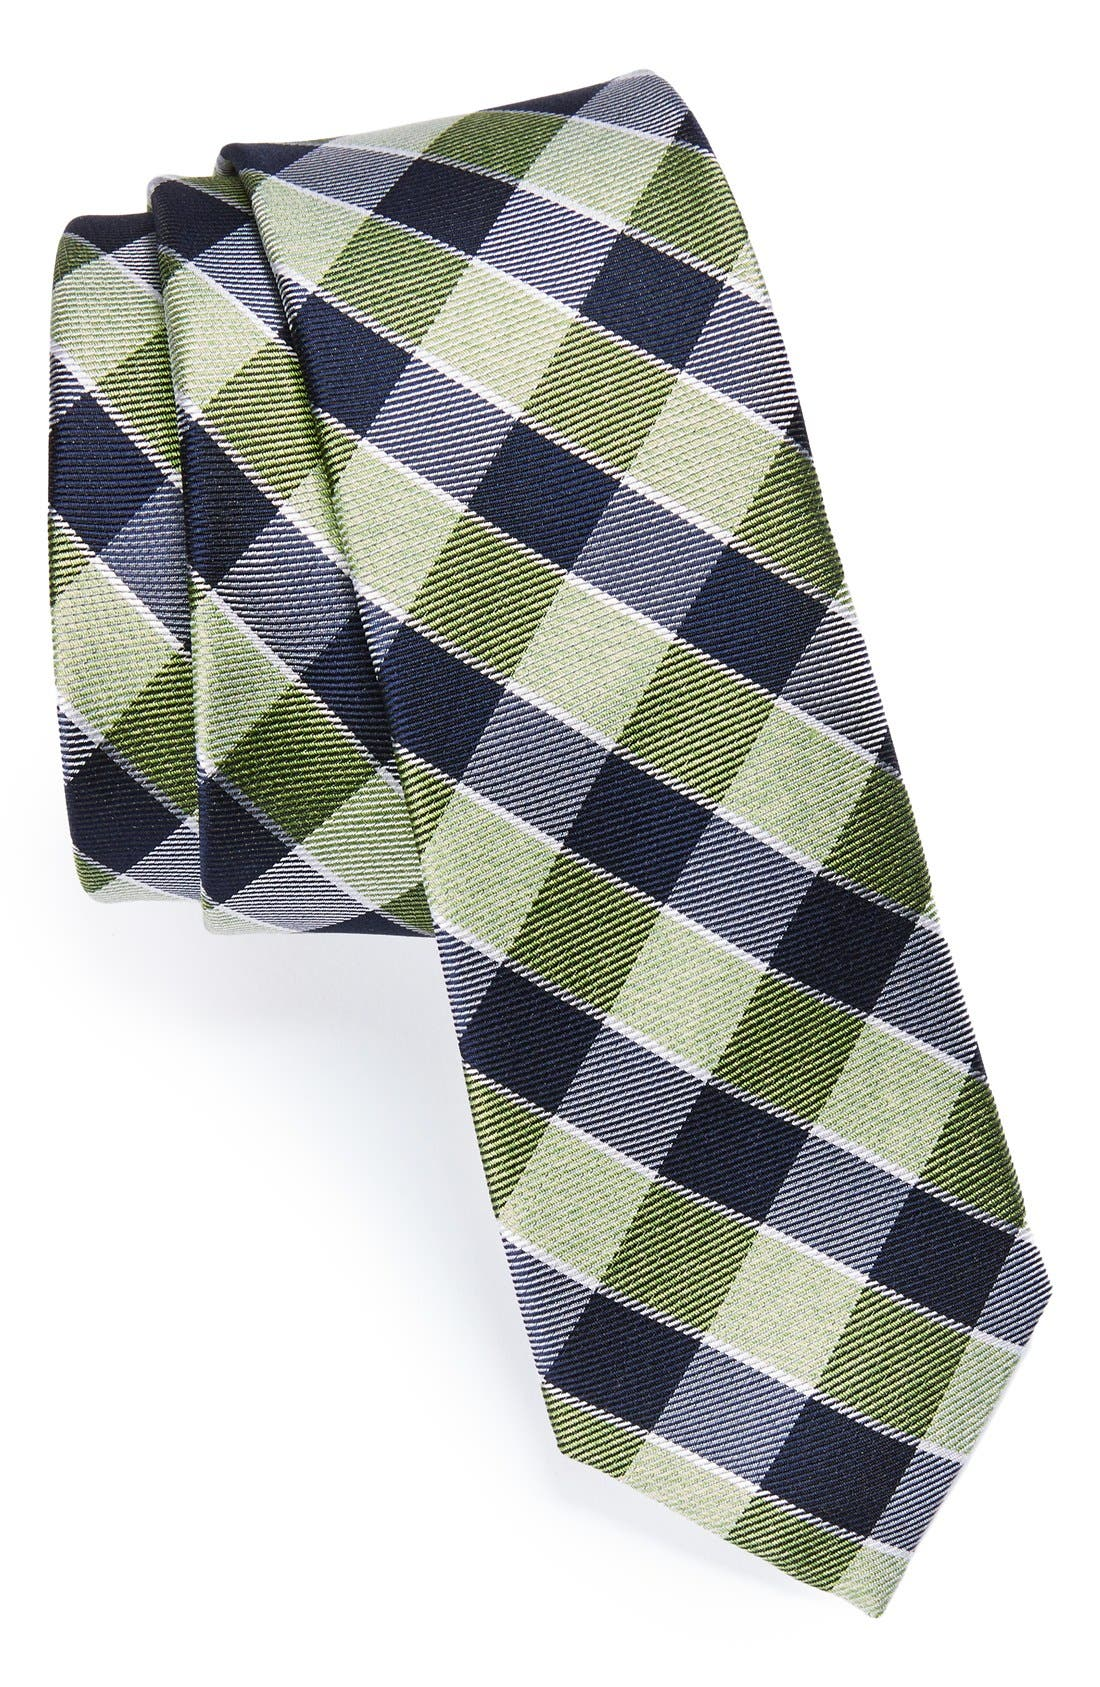 Alternate Image 1 Selected - Original Penguin Woven Silk Tie